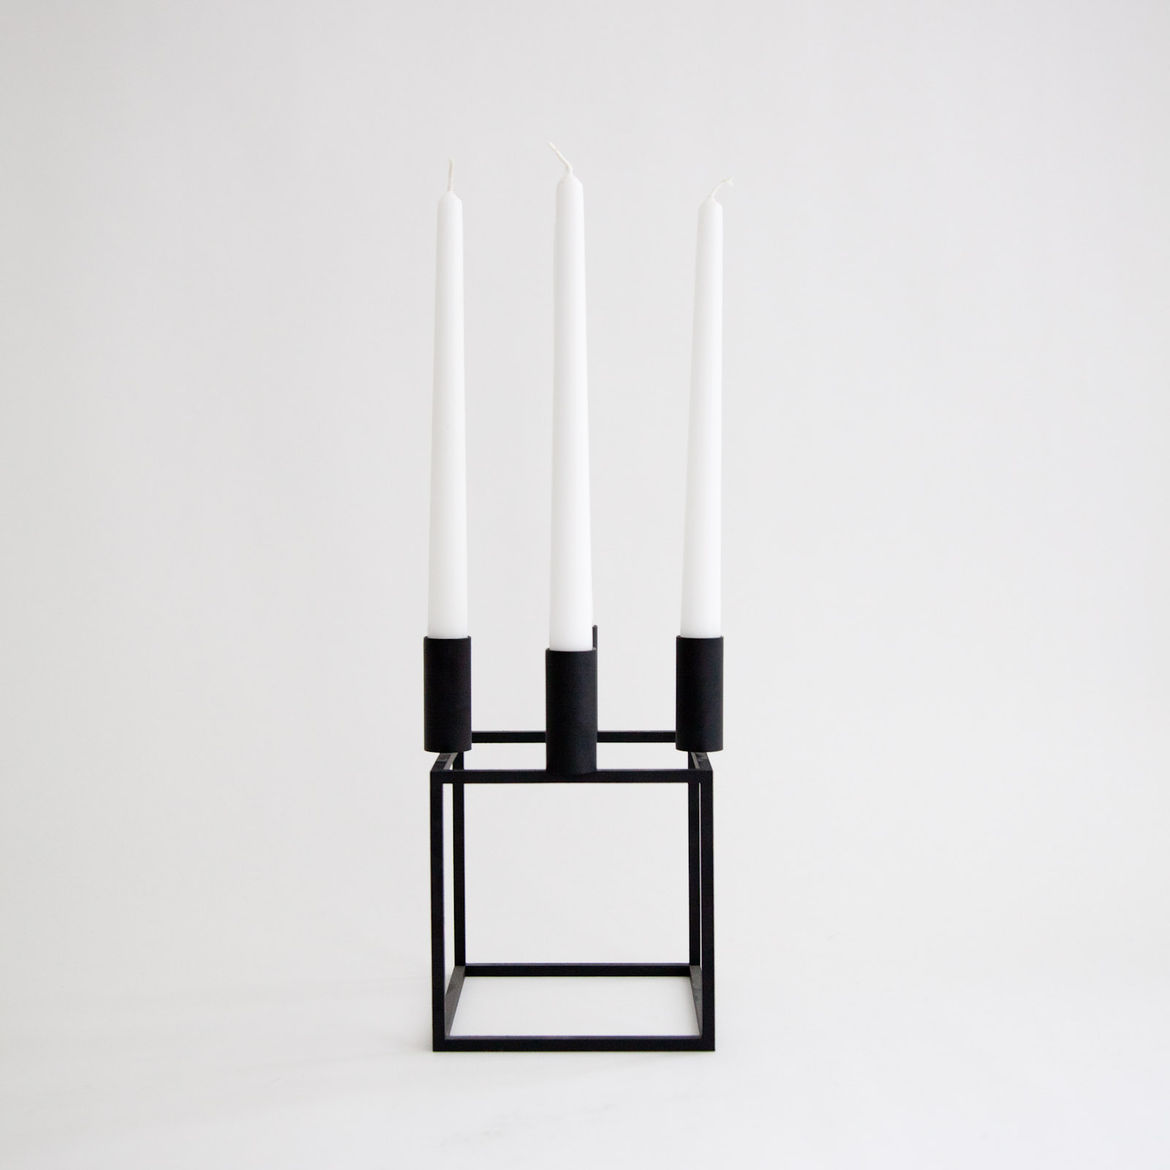 """<b><a href=""""http://store.mjolk.ca/index.php?product=10004&shop=1&search=Kubus%20Candleholder"""">9. Kubus candleholder by Mogens Lassen.</a></b> """"One of our favorite Danish design pieces, it's timeless, mathematical, and looks good anywhere. For us it's a ma"""